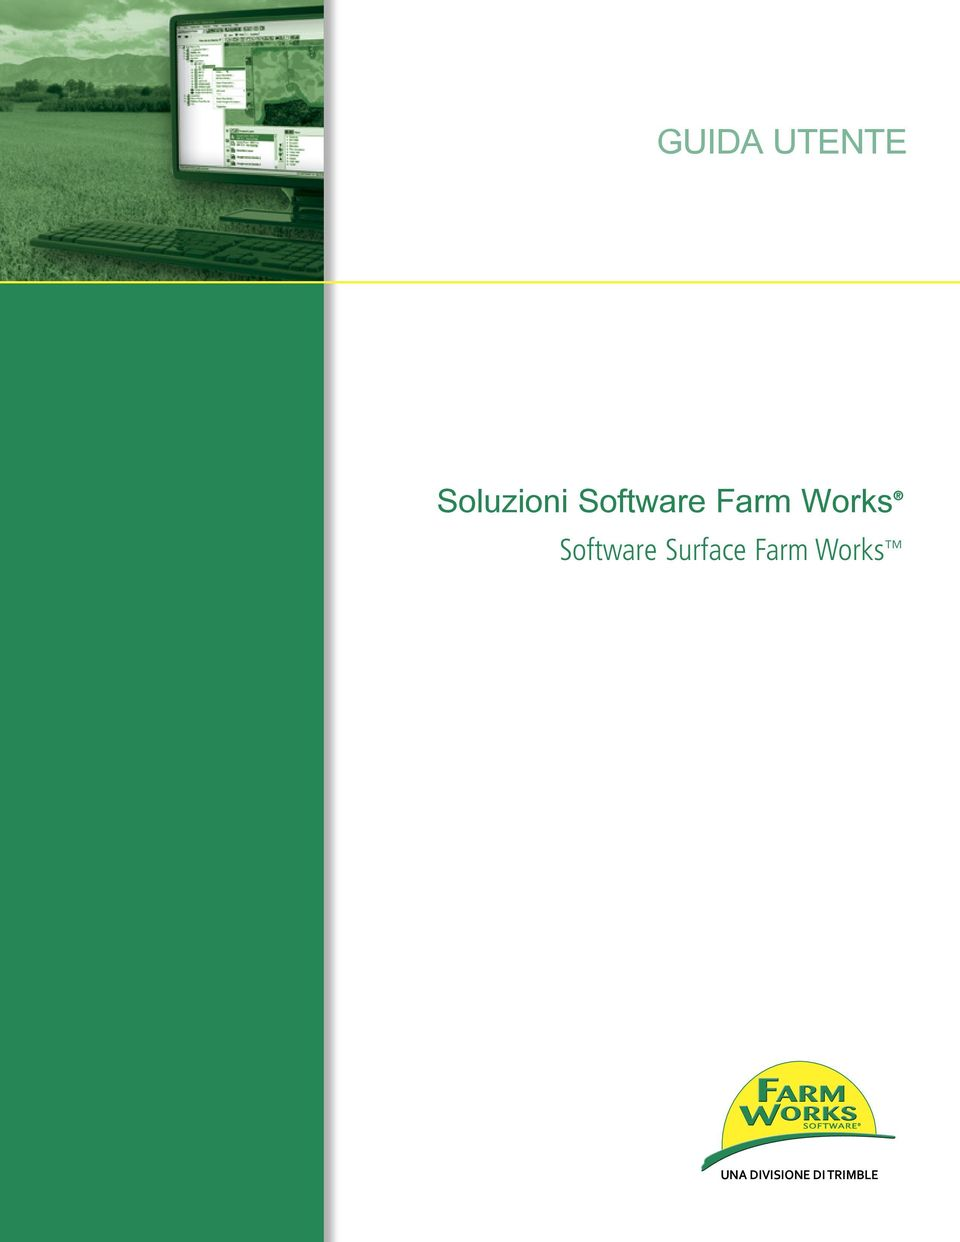 Software Surface Farm